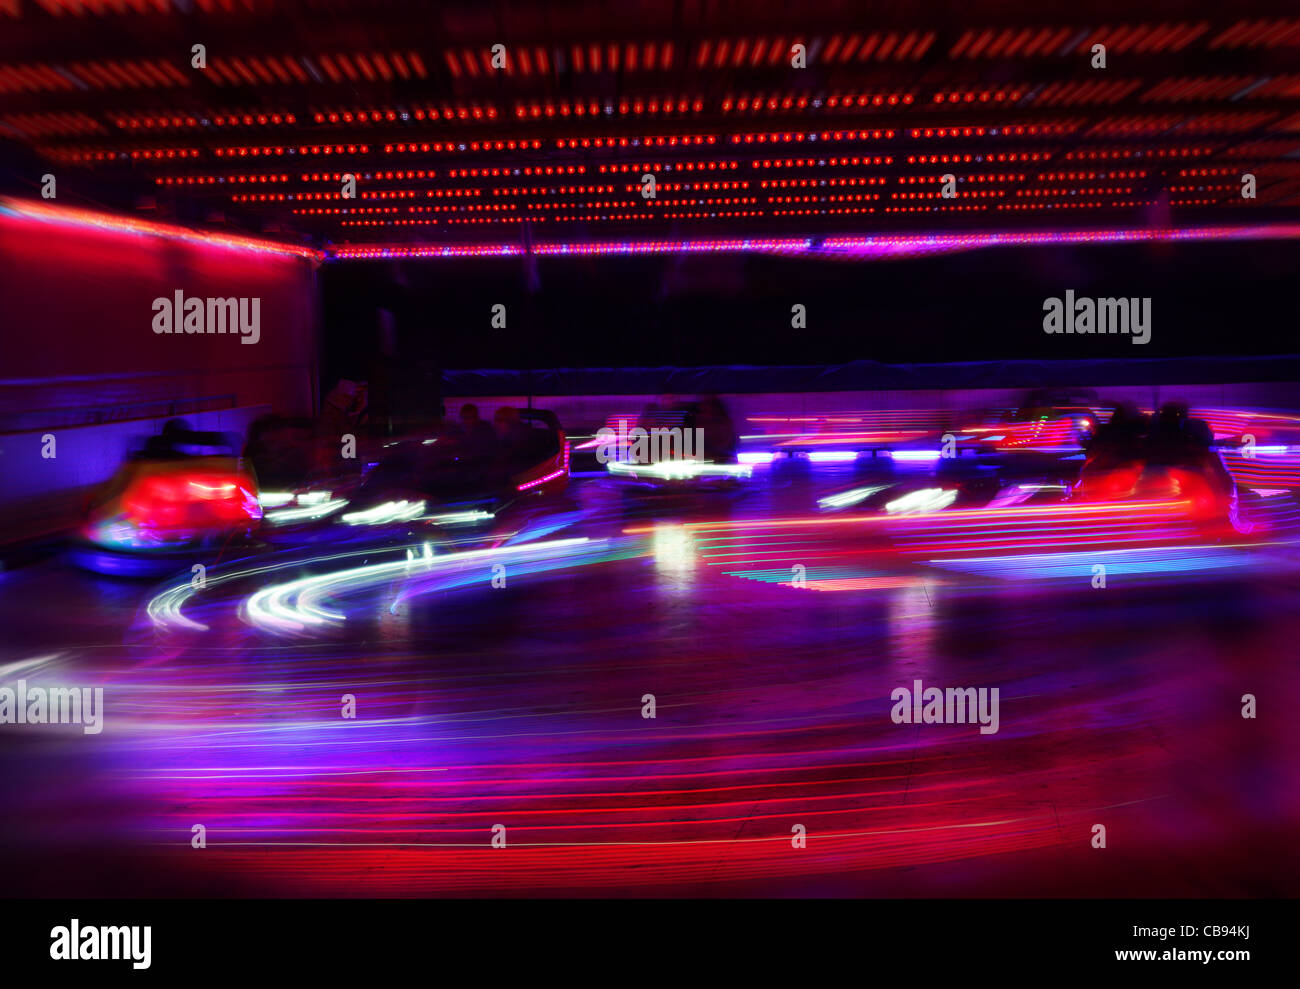 Dodgem auto in movimento Immagini Stock